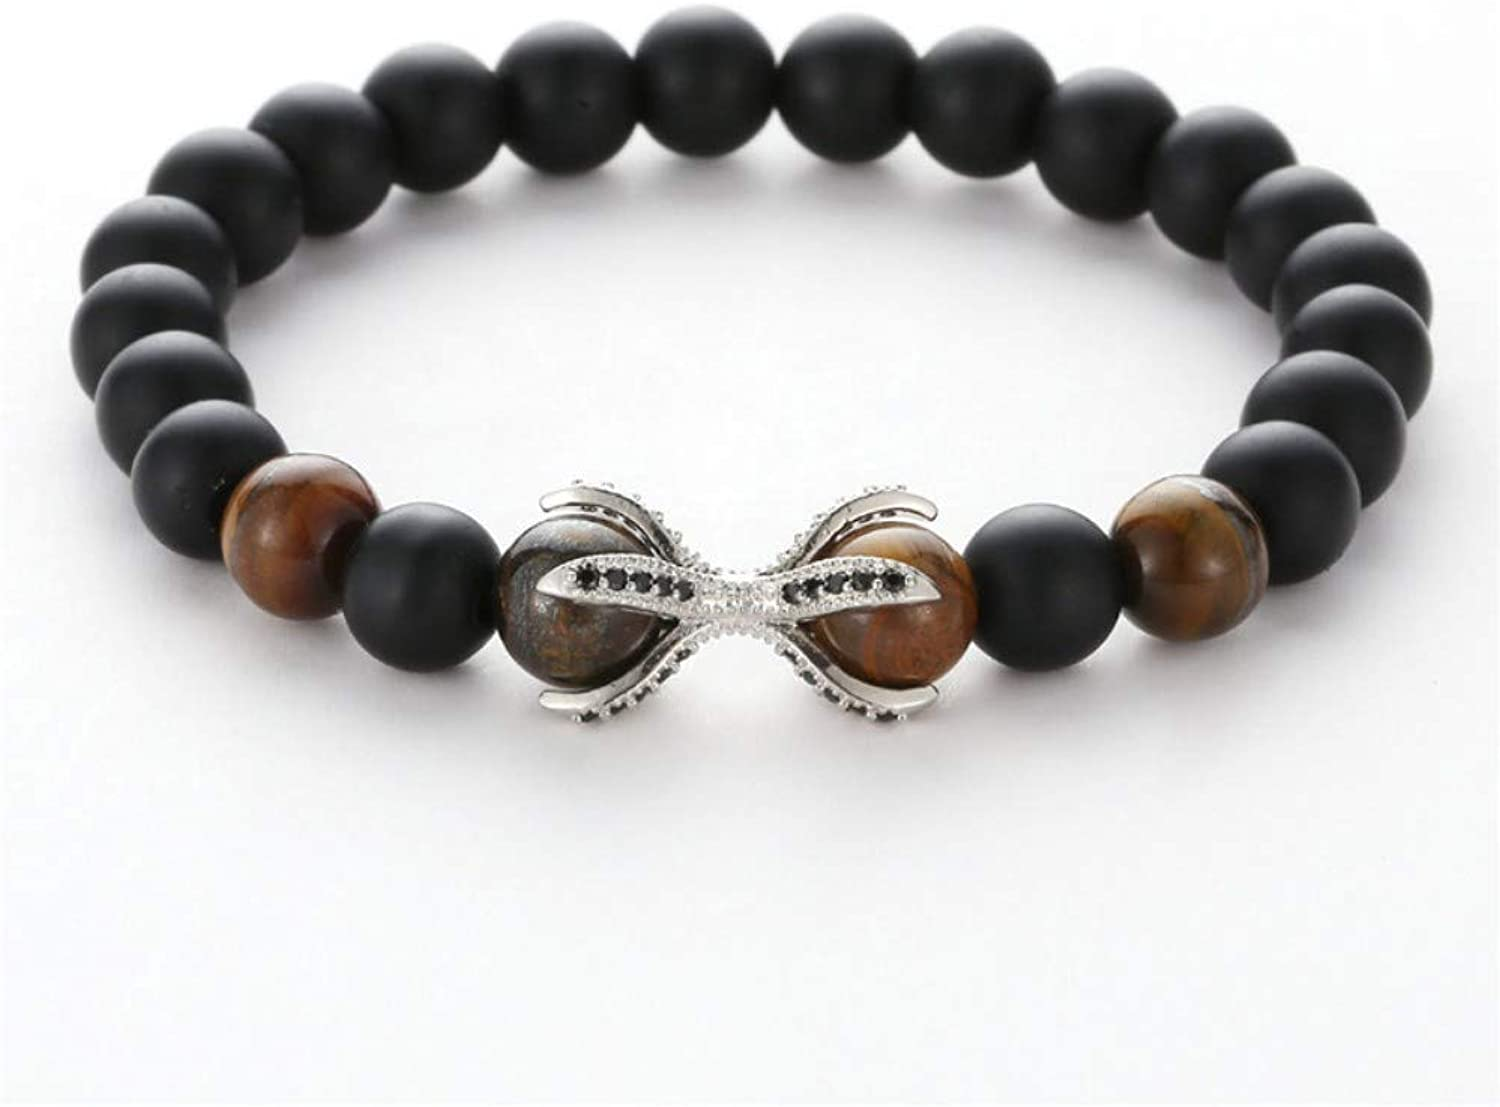 Bracelet Men,Fashion MicroSet Black Brown Silver Zircon FourCorner Claw Bead Bracelet Men Natural Stone Bracelet Women